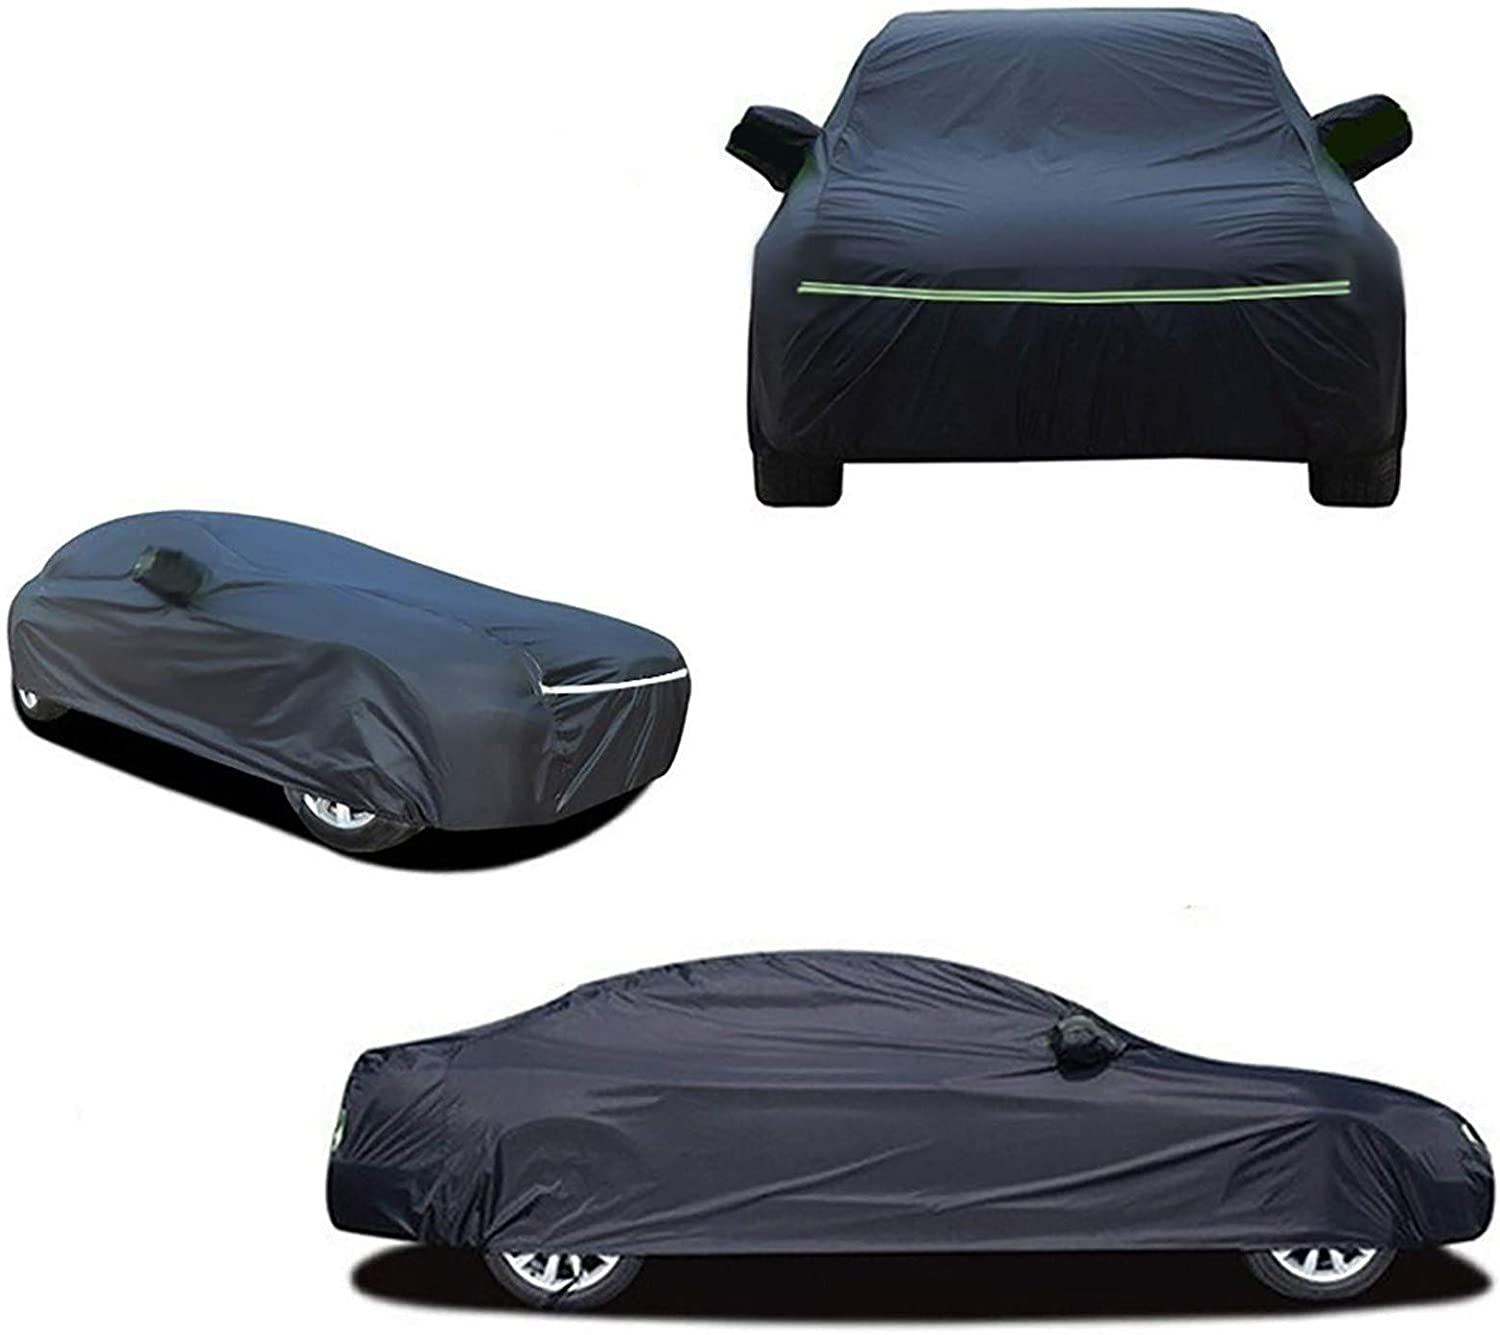 Color : Black, Size : CT 200h Plus Velvet Waterproof Oxford Cloth Car Cover Compatible With Lexus CT200h ES300h ES350 GX460 GX470 HS250h Effectively Respond To Rain Snow And Windy Weather